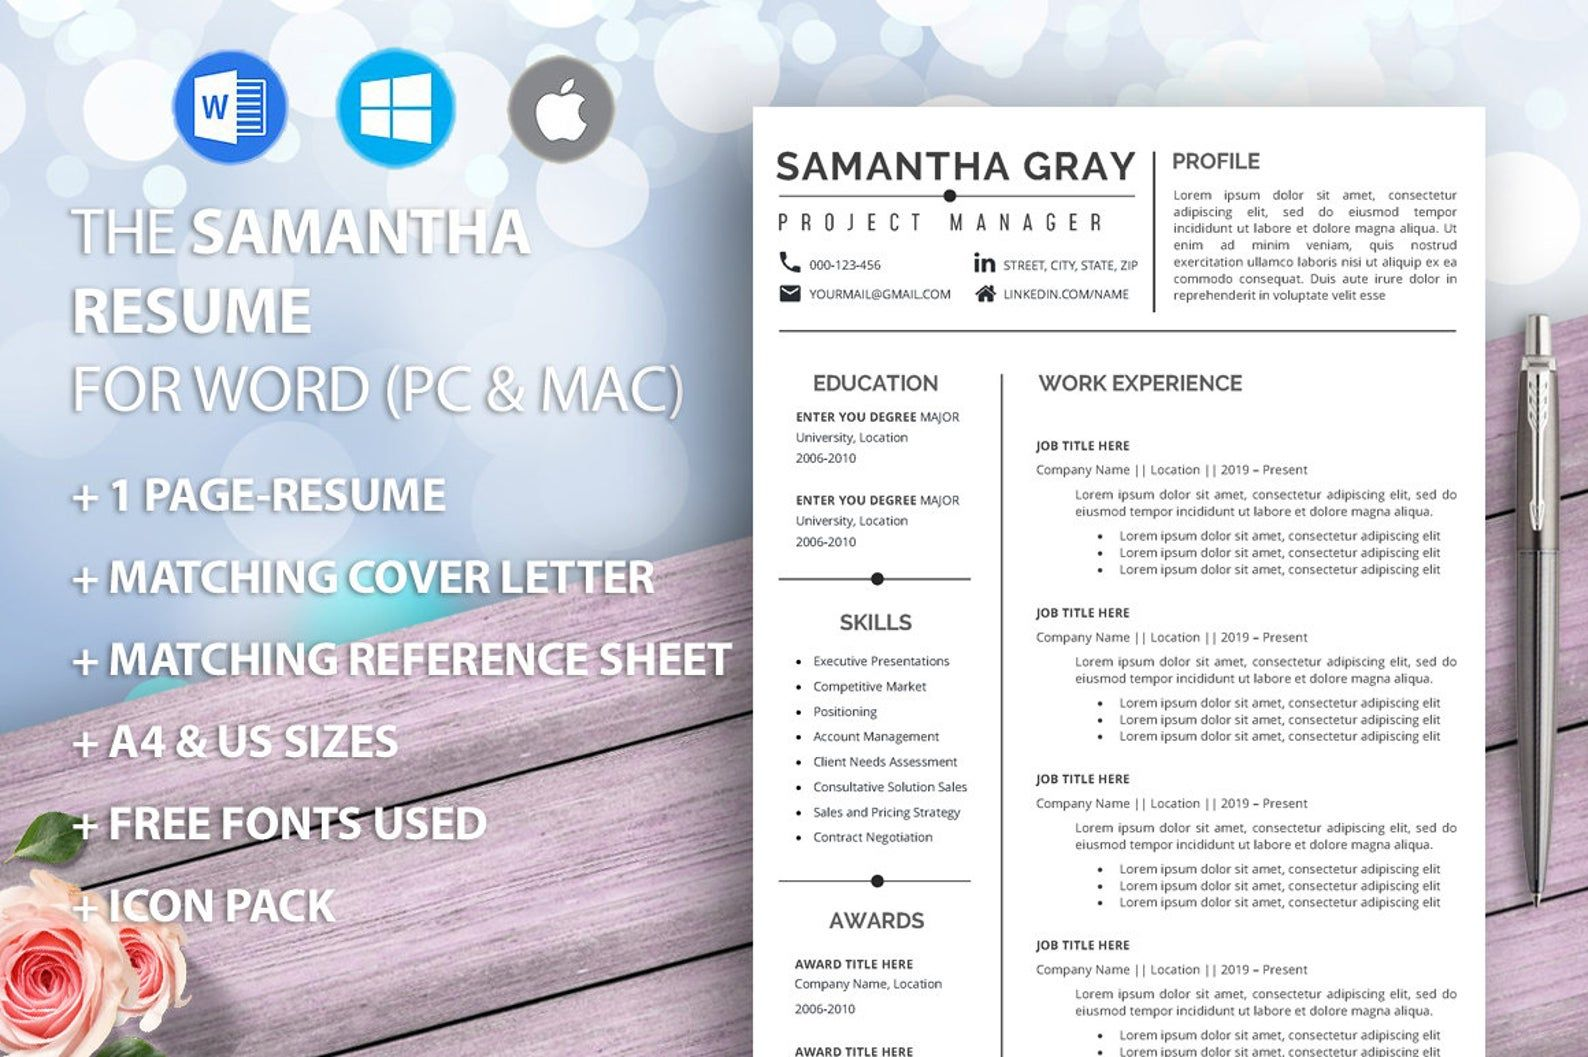 Project manager resume template for Word, Professional